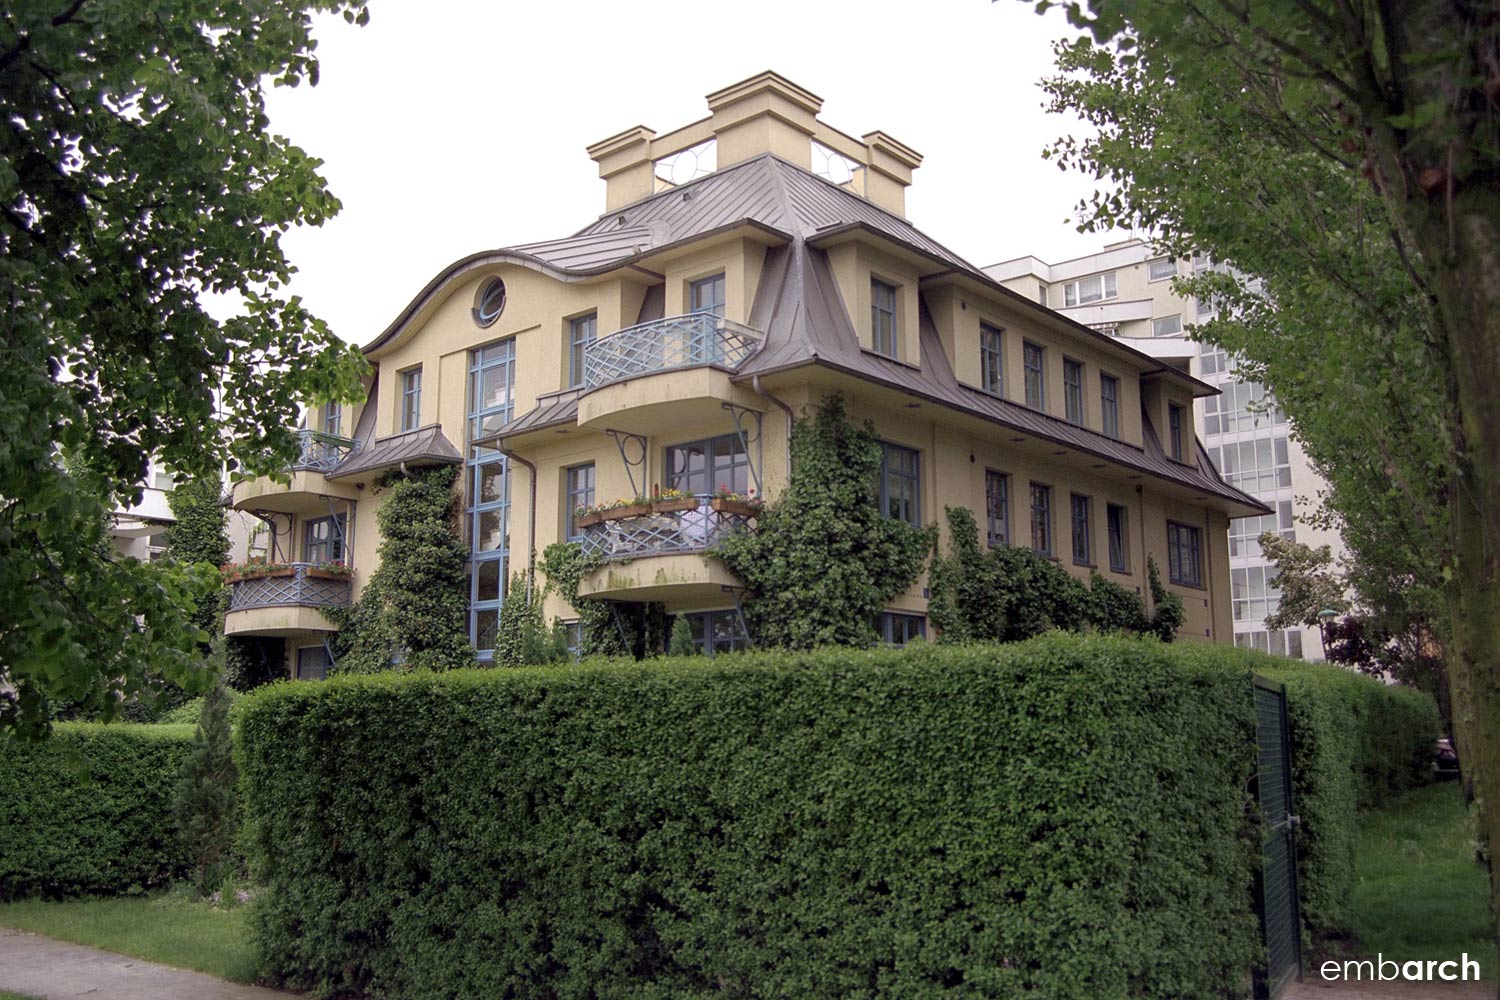 Tegel Harbor Villa, Number 6